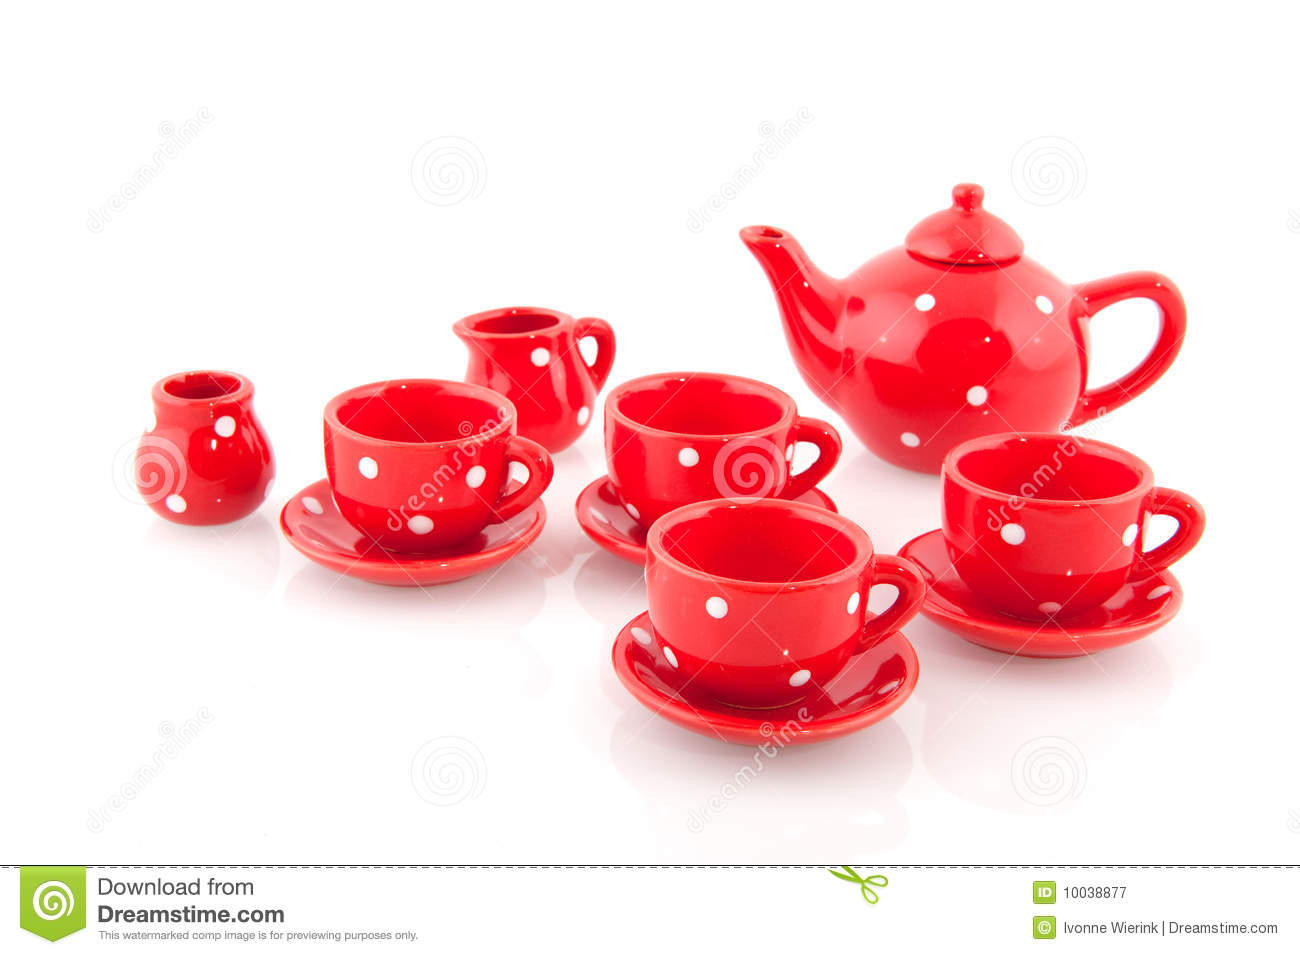 Cheerful Red Crockery Royalty Free Stock Photography - Image: 10038877